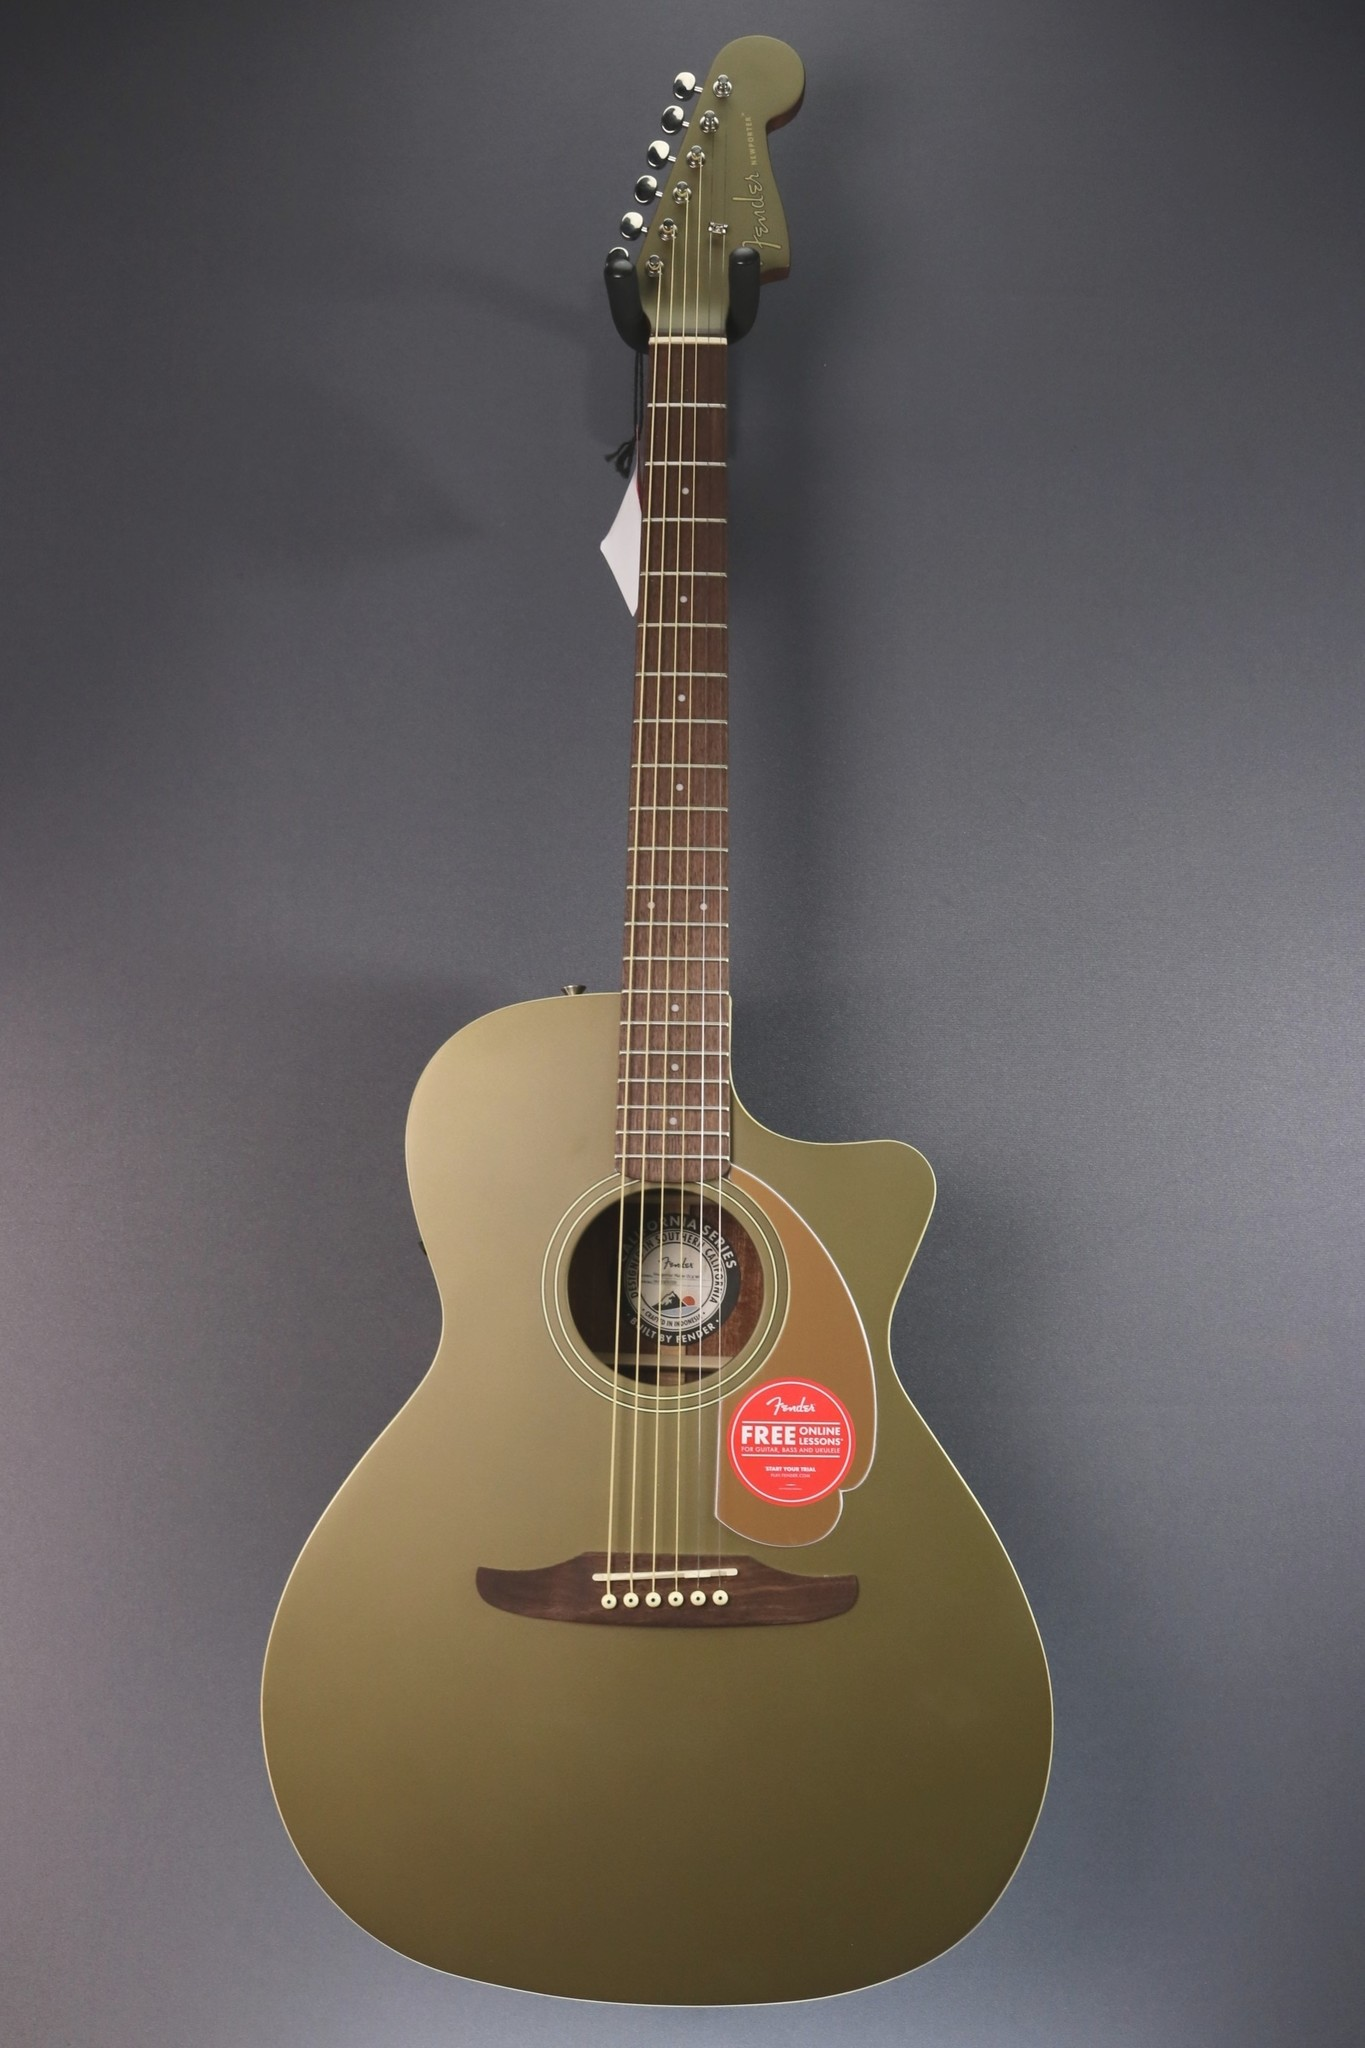 Fender DEMO Fender Newporter Player - Olive Satin (729)